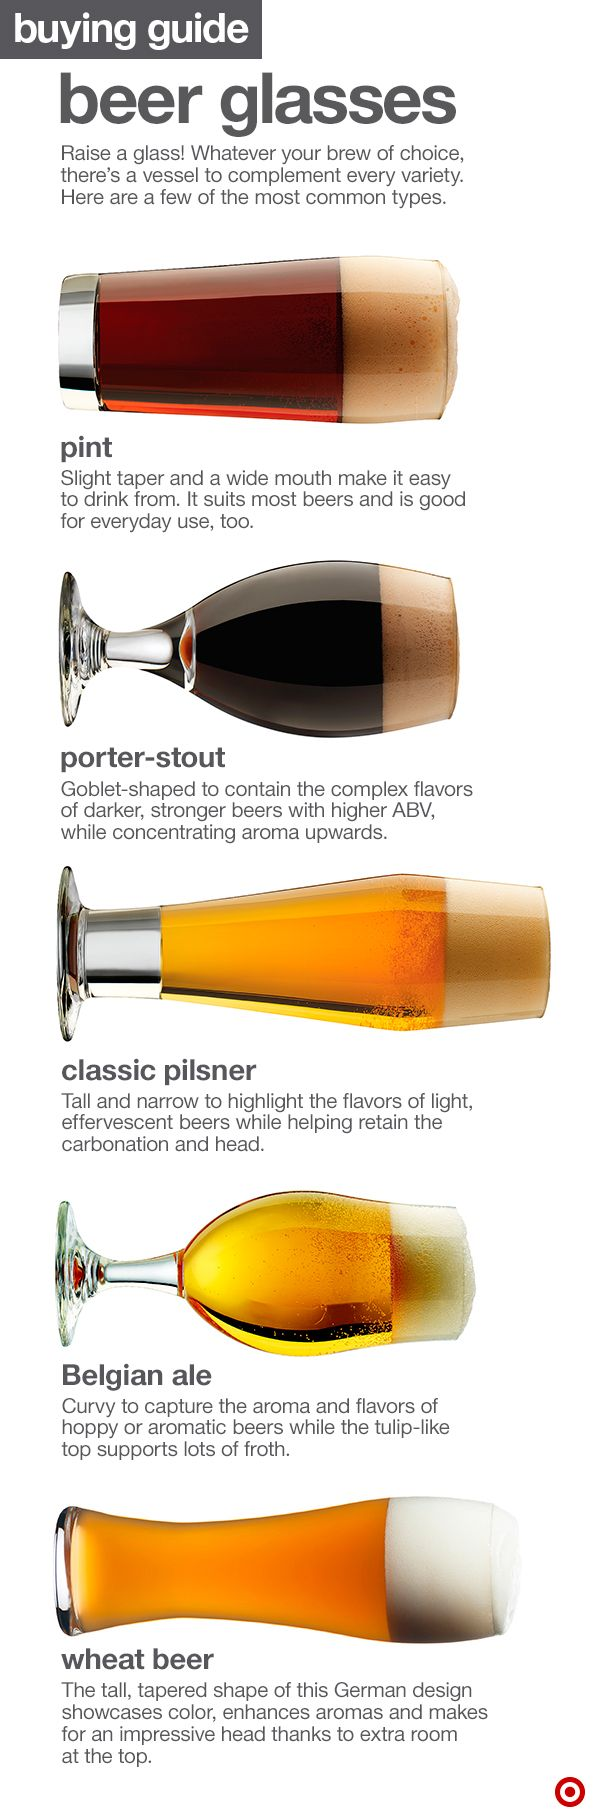 Here's a little cheat sheet to know which type of beer glass to use and when. So next time the party's at your place, you can pour out a porter, pilsner, IPA, Belgian ale—or whatever's on tap—like a pro.